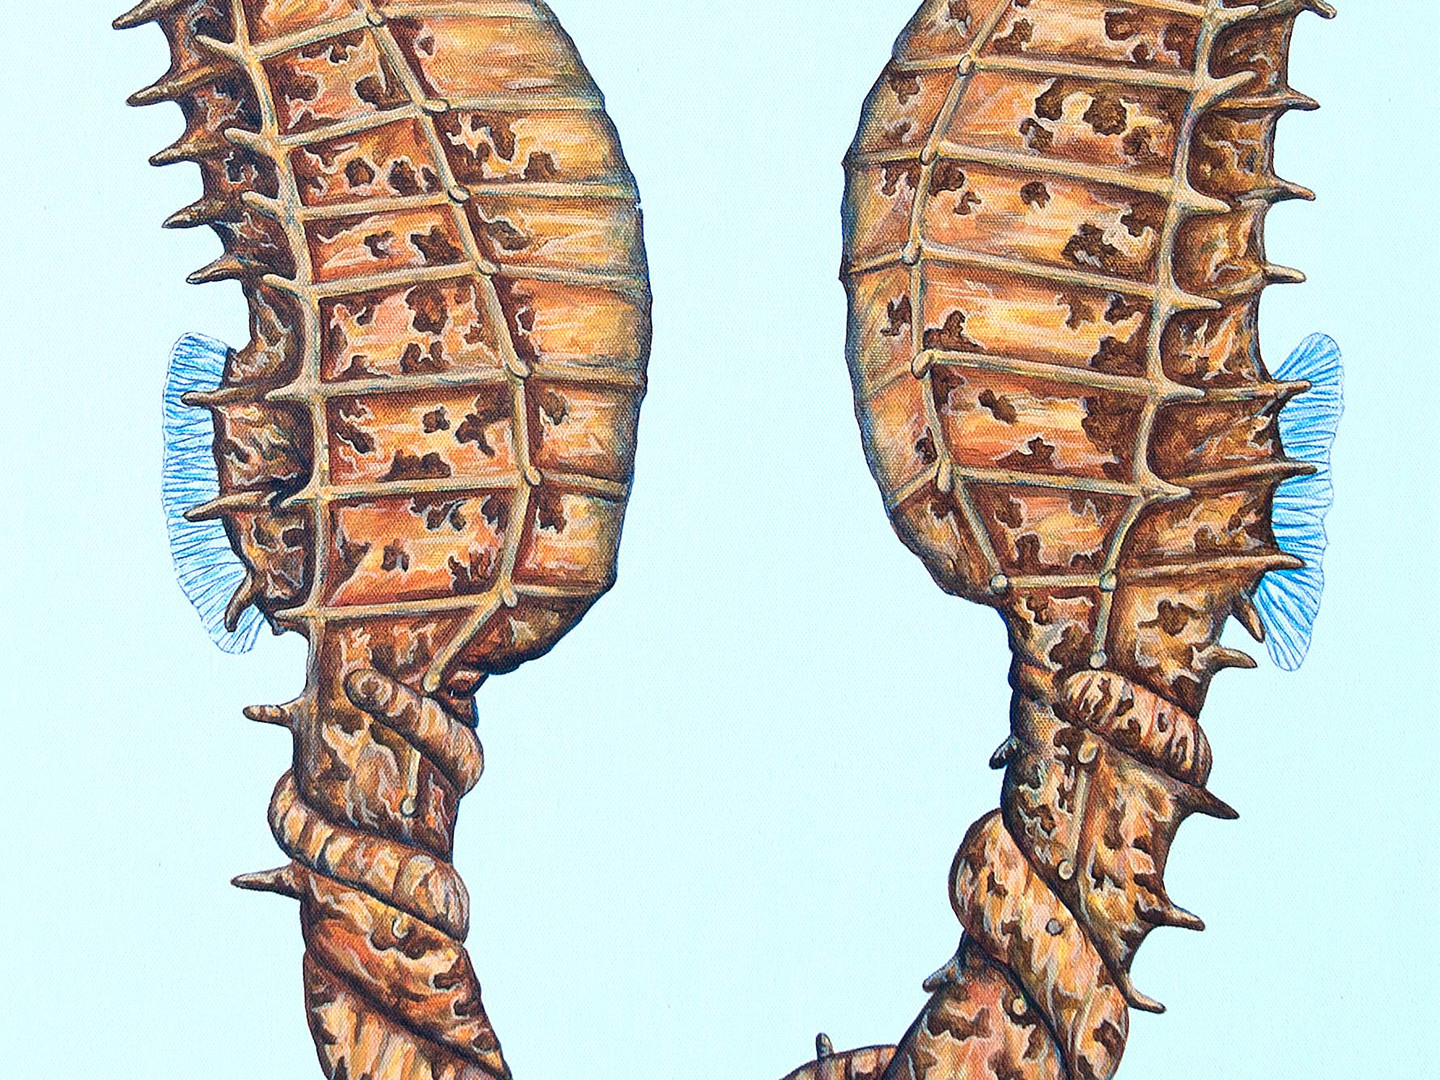 Together - Seahorses